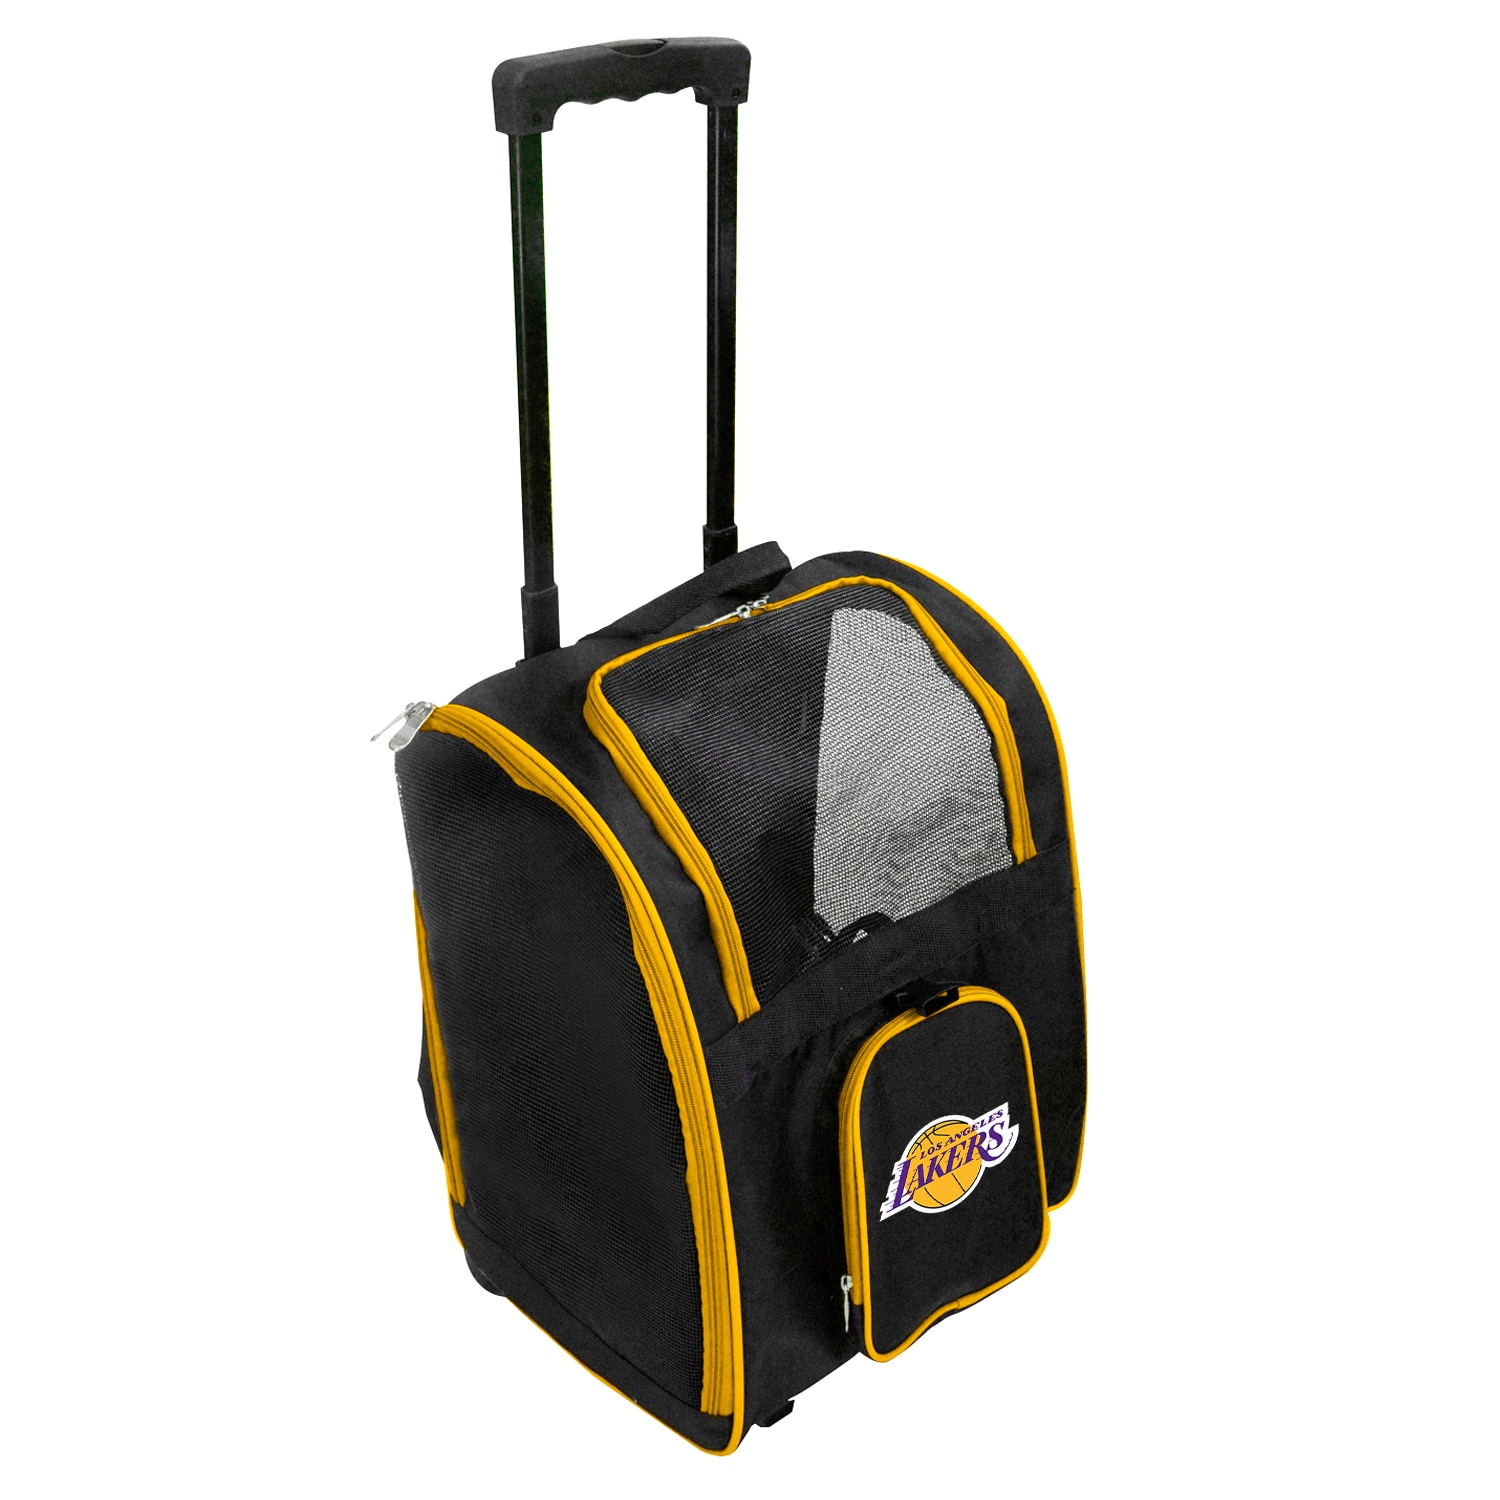 Los Angeles Lakers 2-Wheeled Roller Pet Carrier - Black